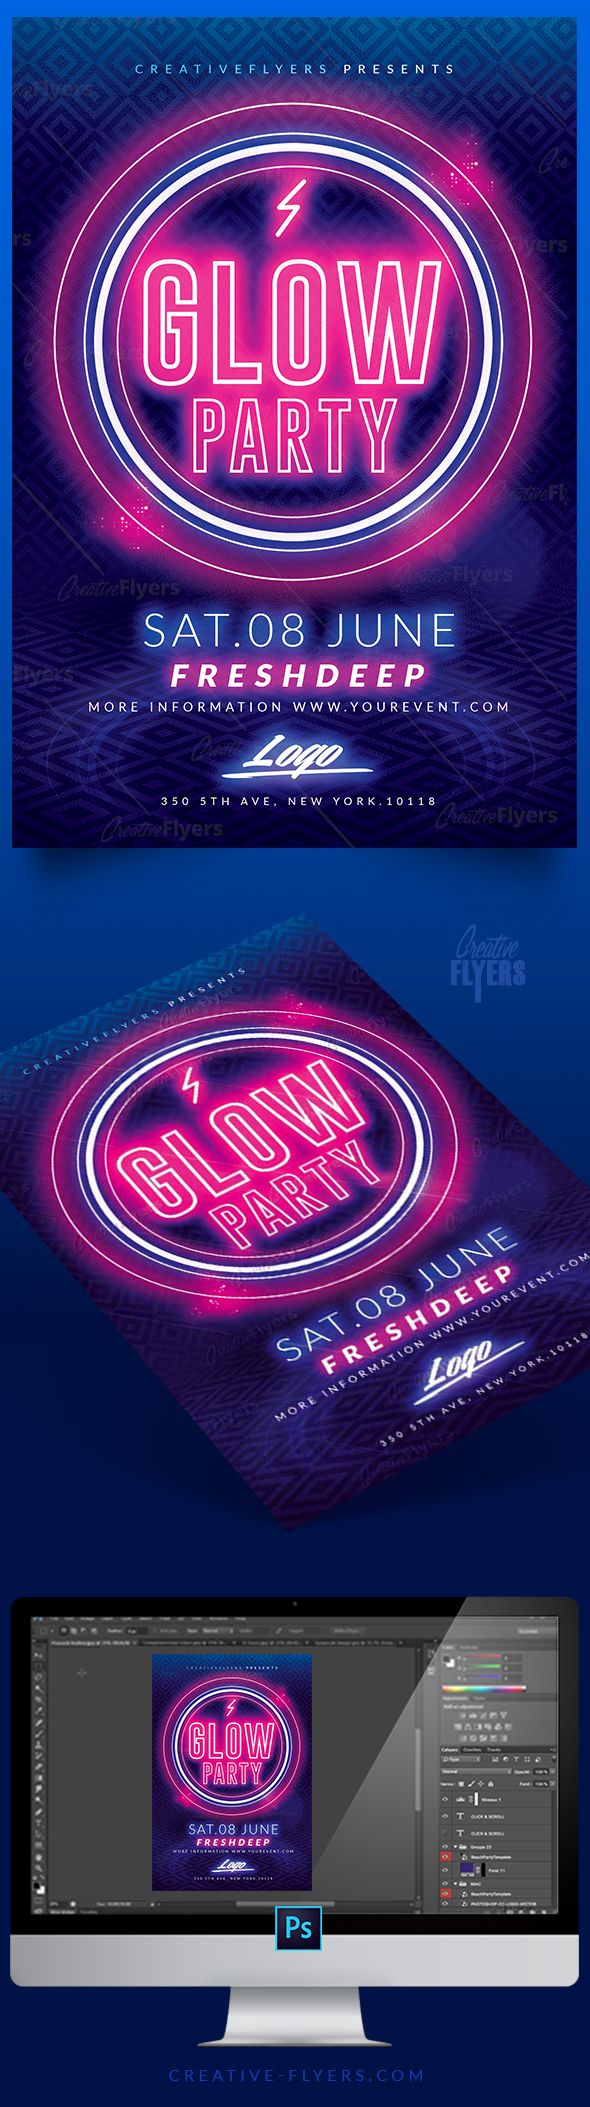 download glow party flyer template psd for photoshop 80 s